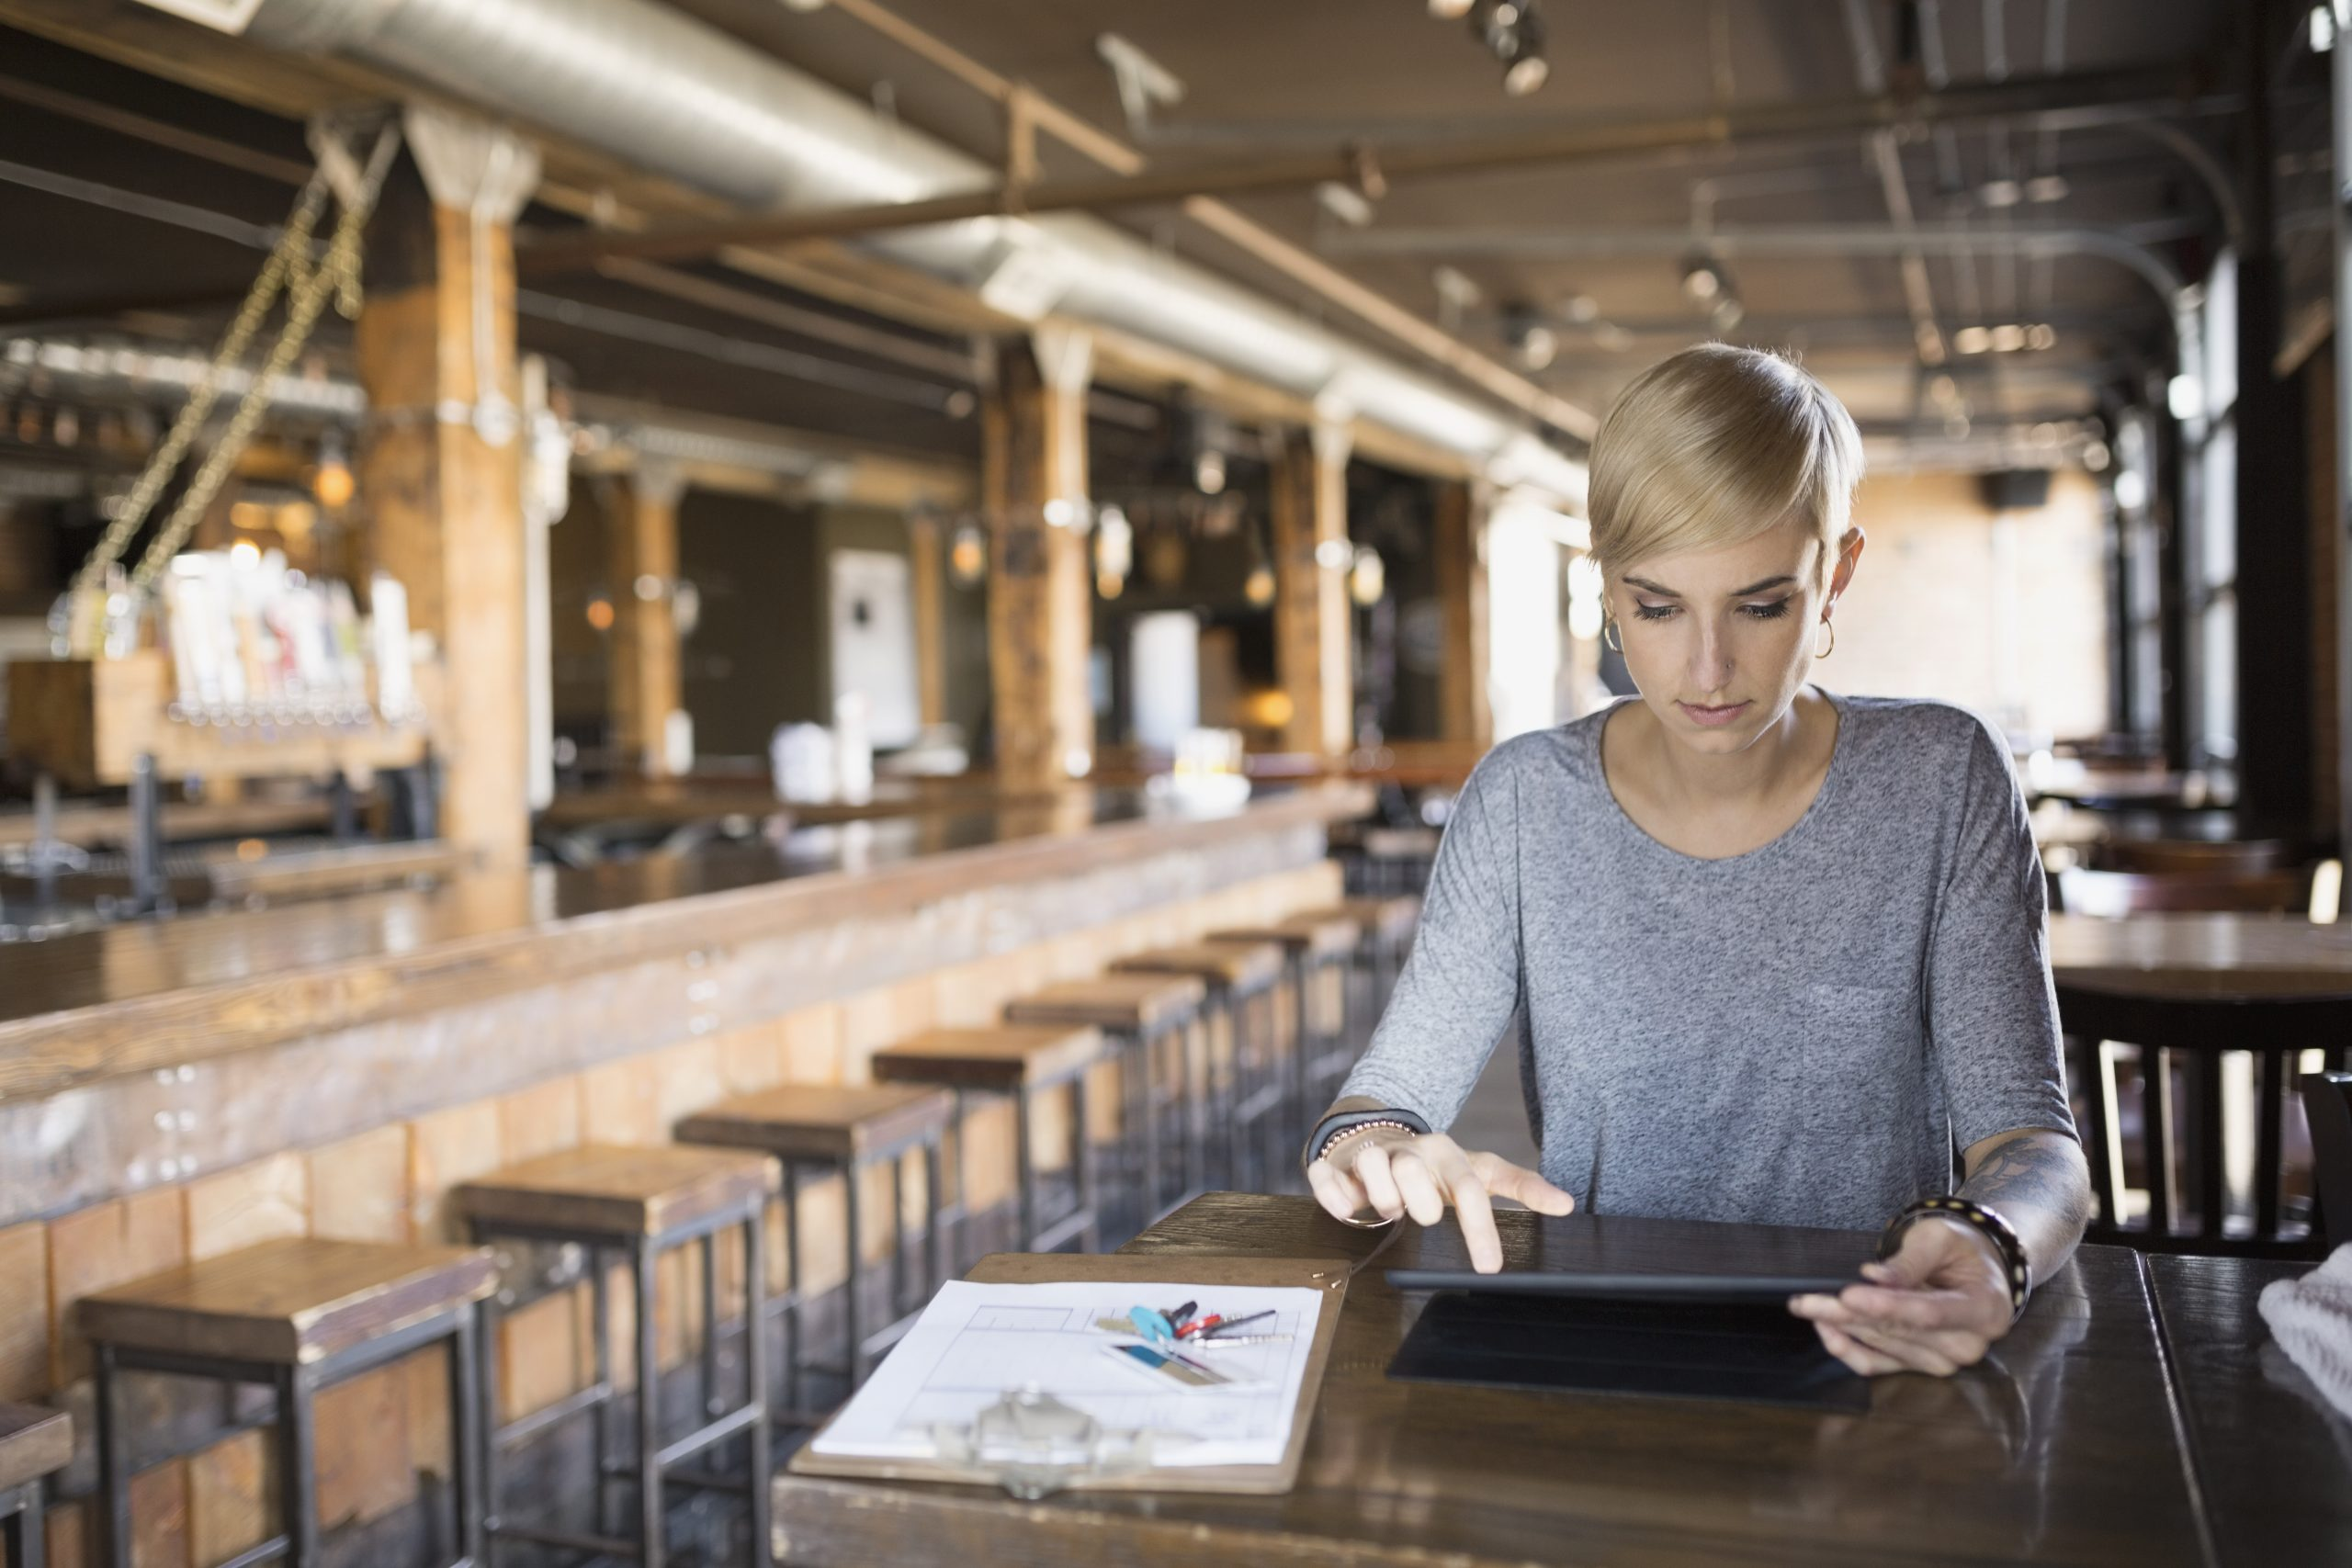 Pub owner using enterprise analytics on tablet at table